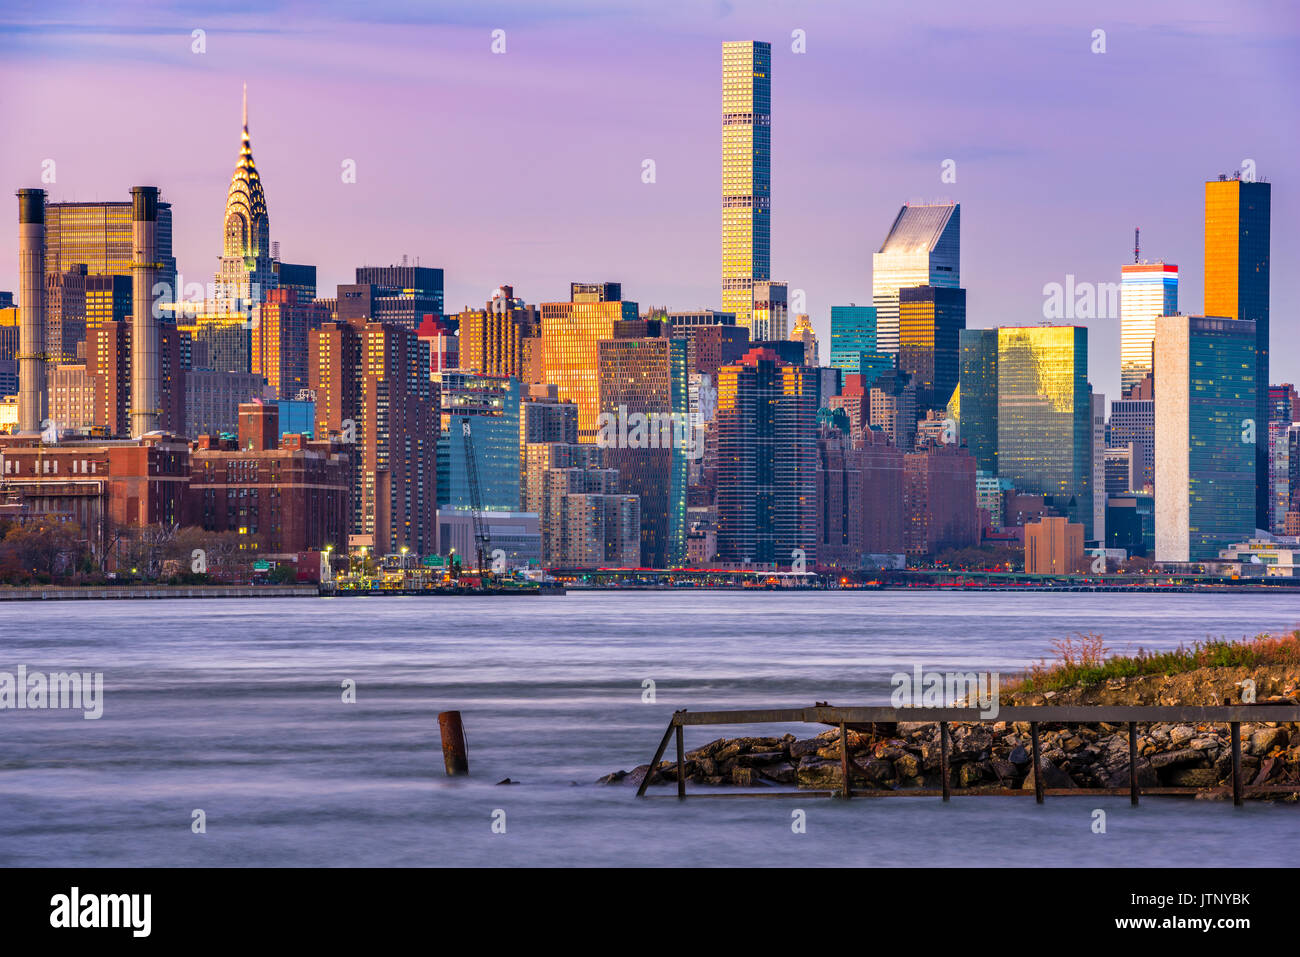 New York City Skyline auf dem East River. Stockbild